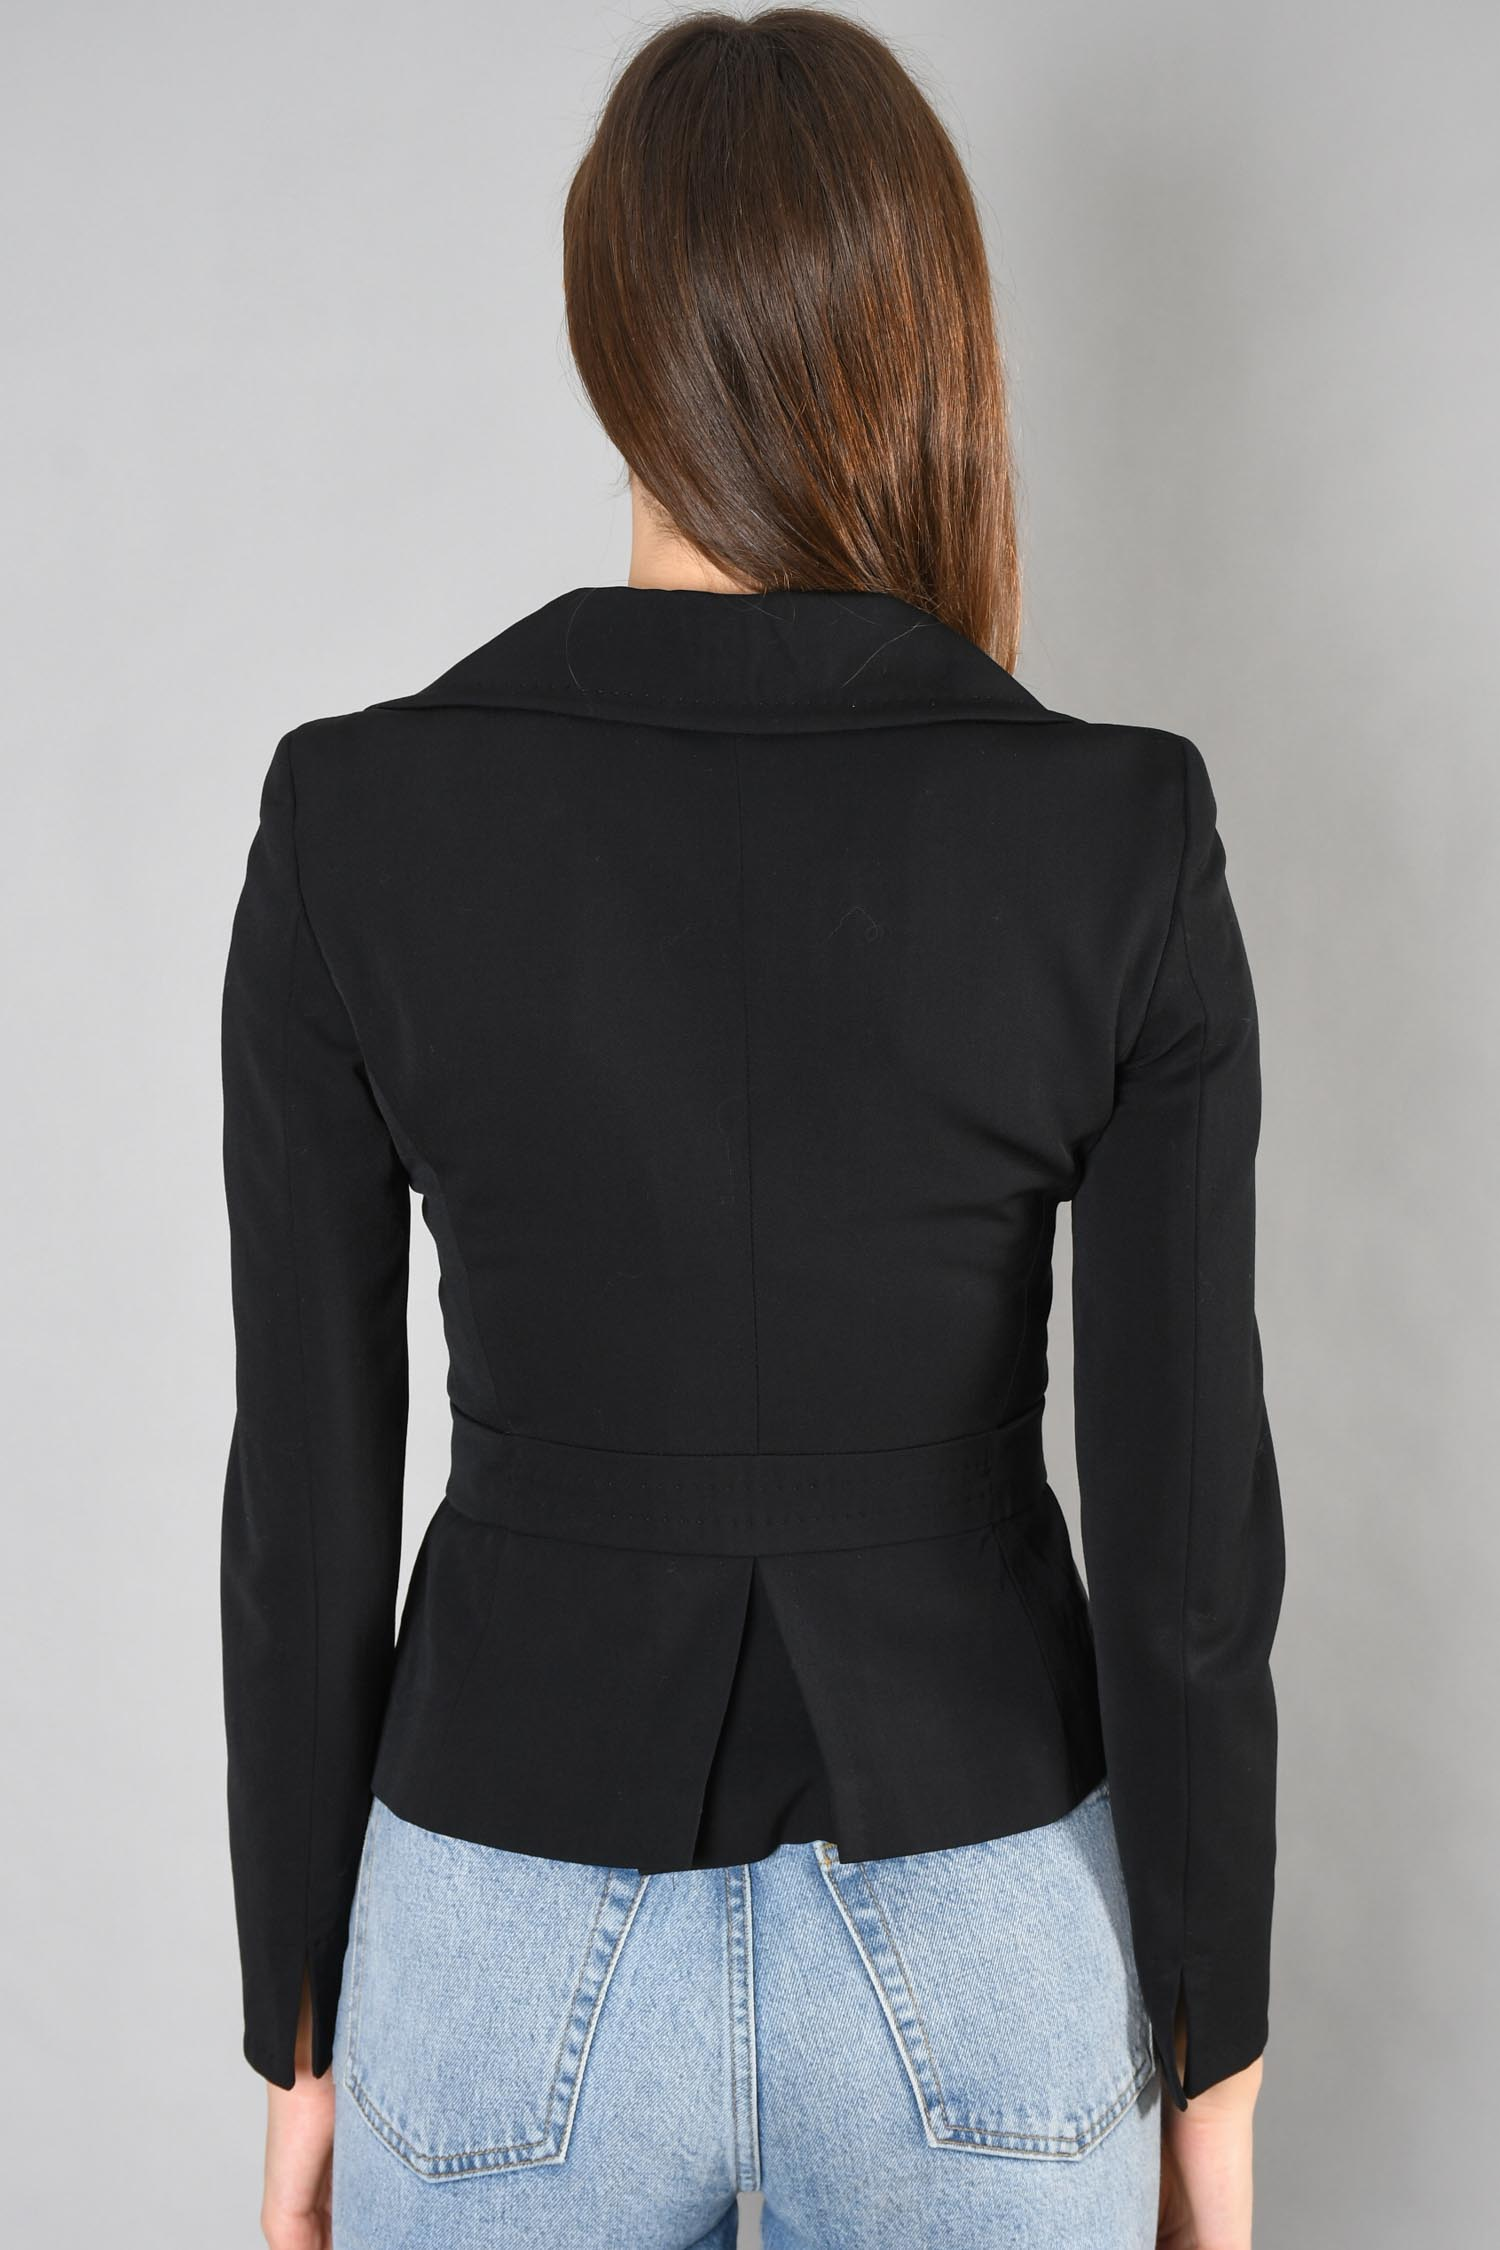 Max Mara x Holt Renfrew Black Blazer w/ Belt Size 8 US